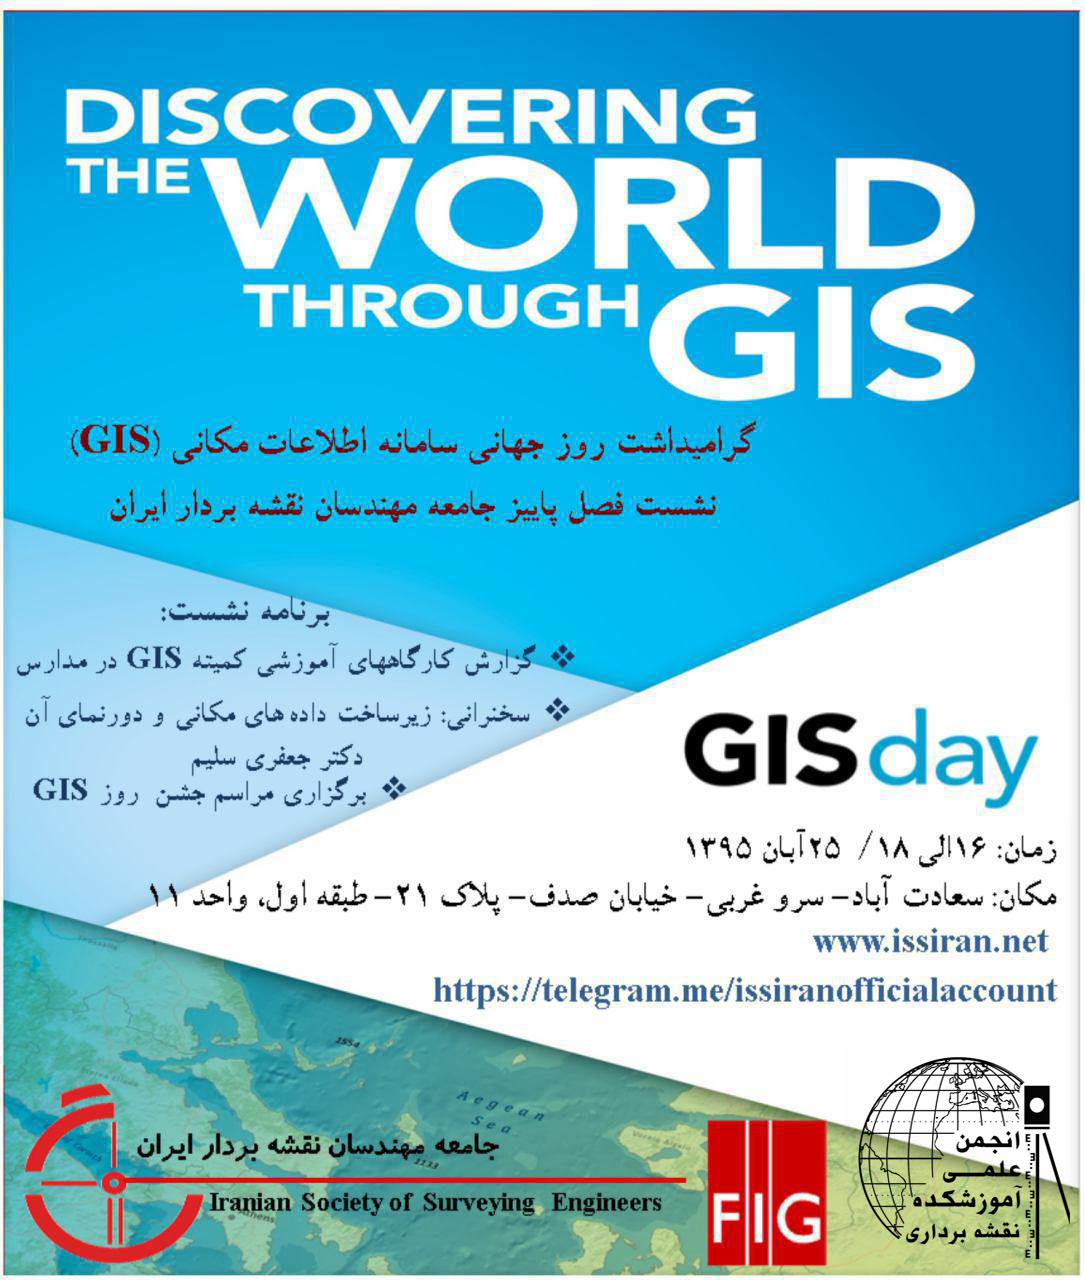 http://uupload.ir/files/3kjz_gis_day.jpg